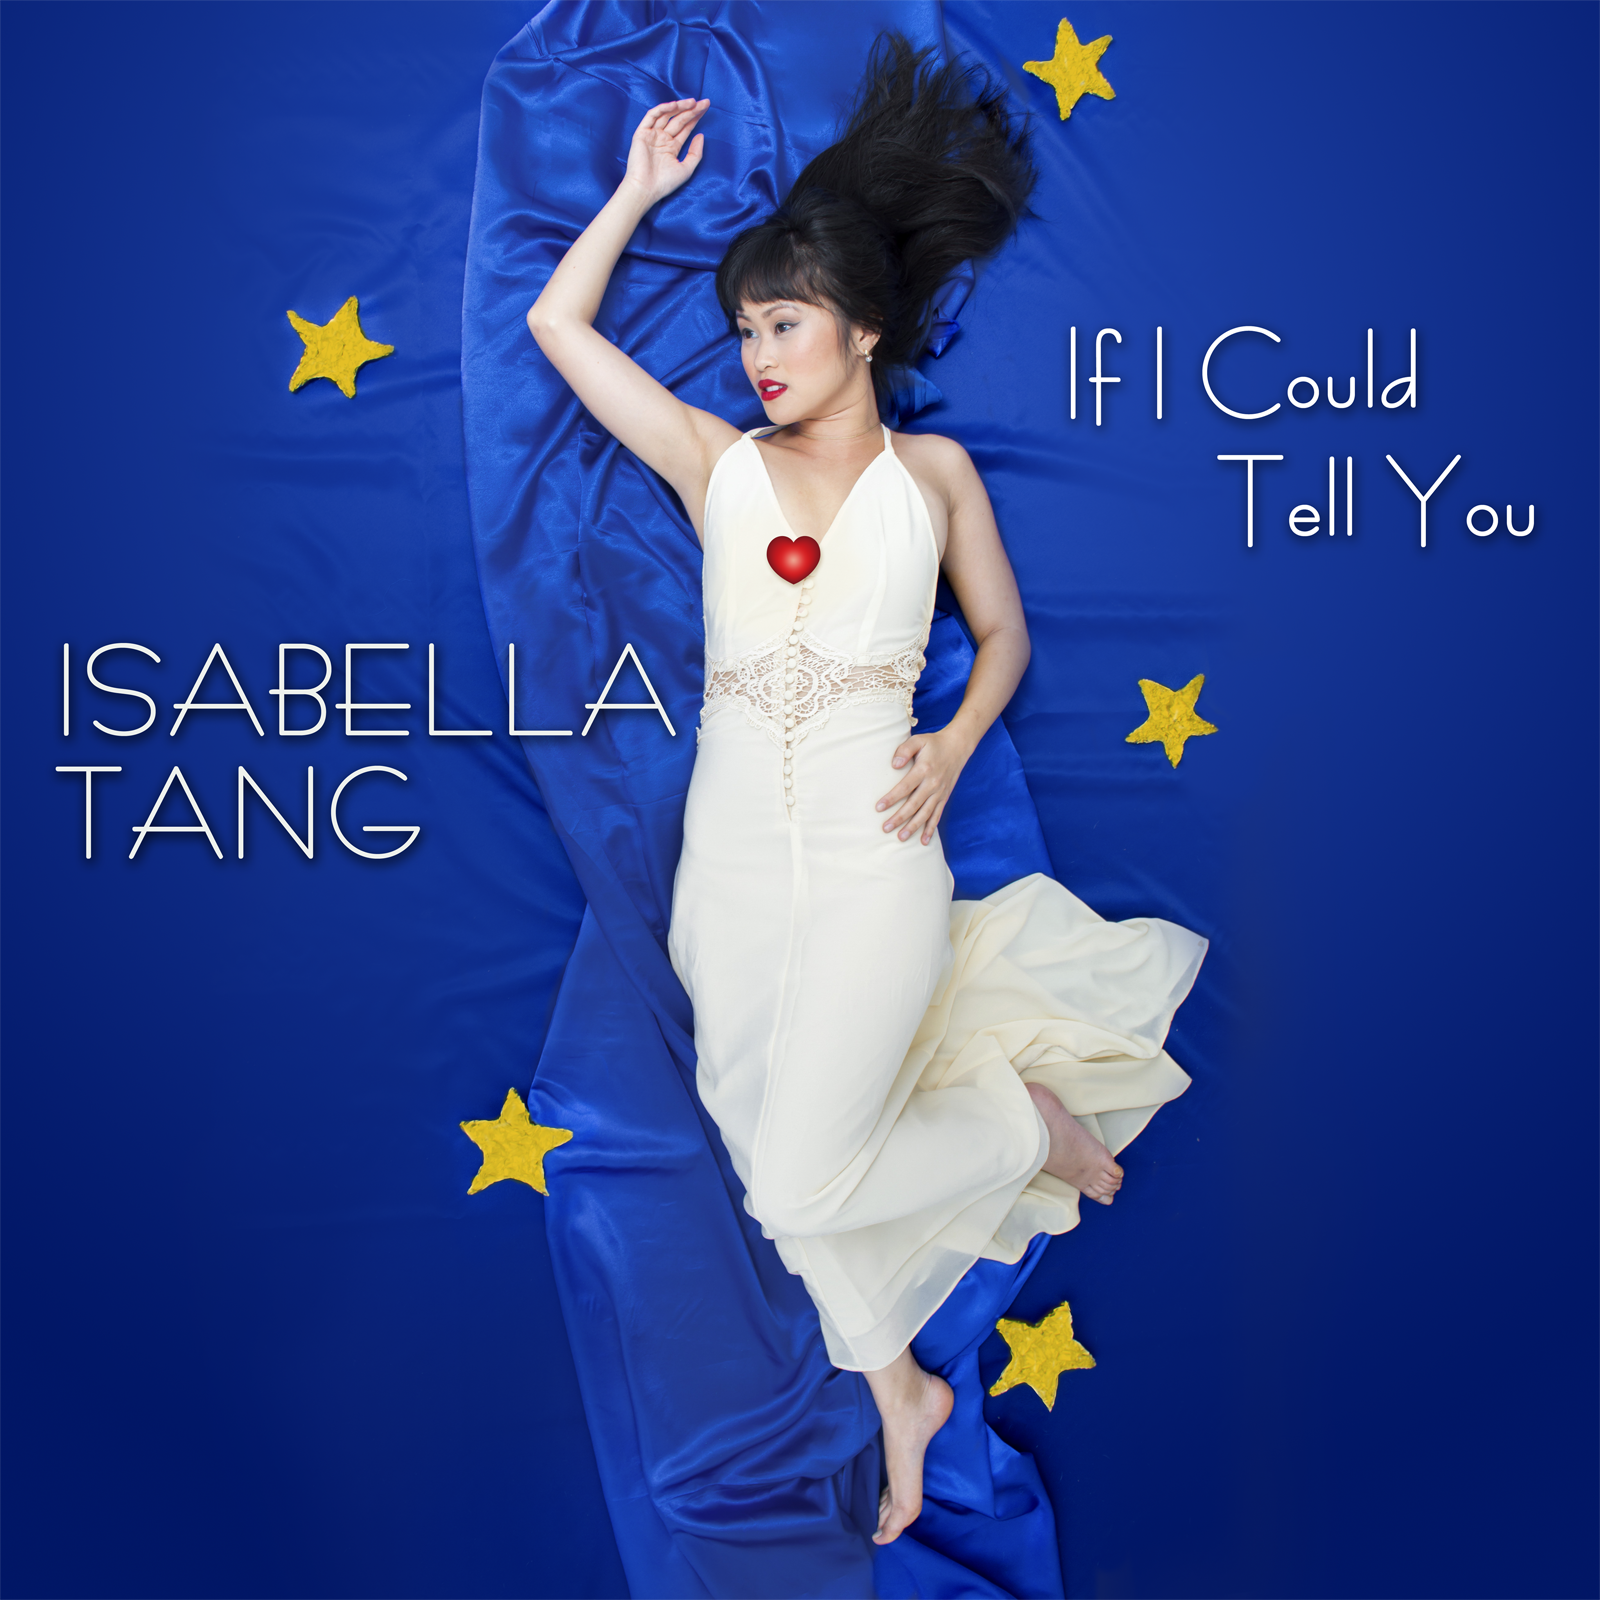 Isabella Tang_EP Album Cover_If I Could Tell You.png